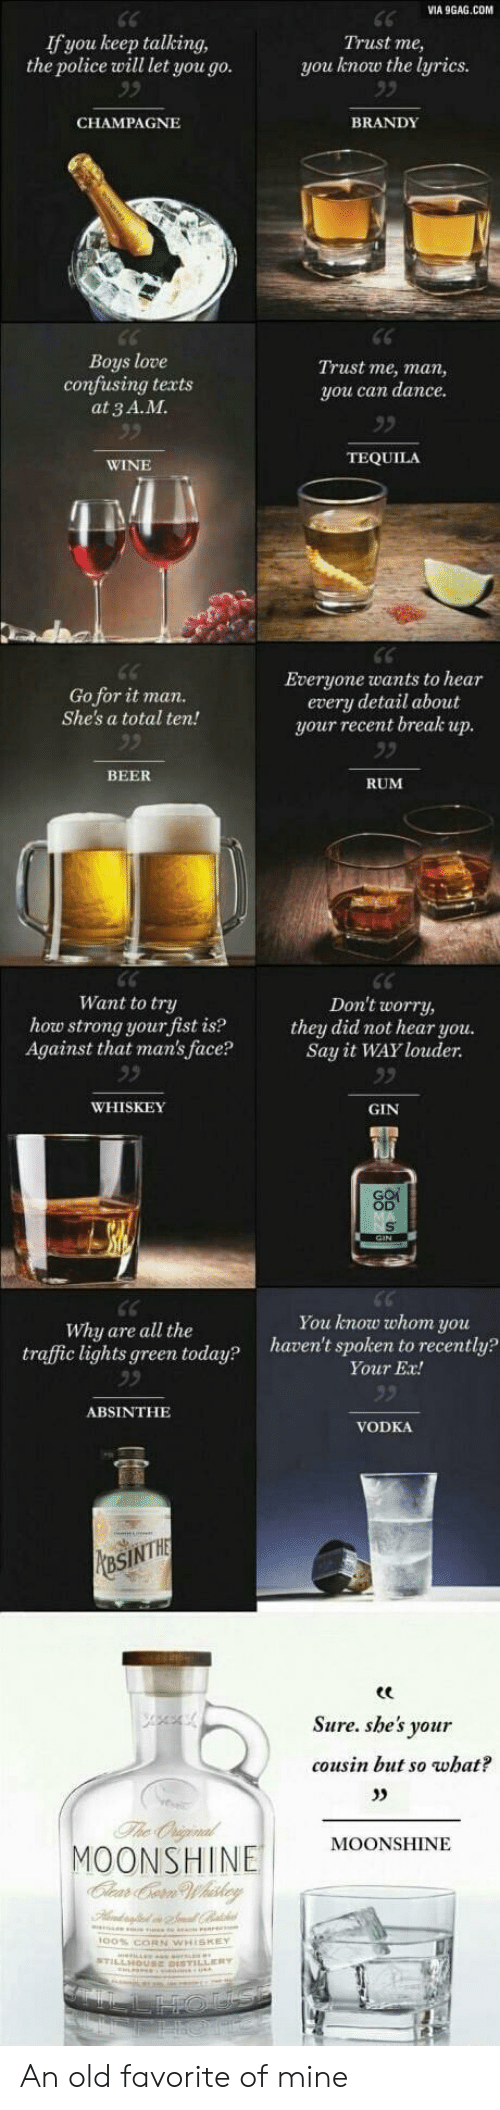 whiskey: VIA 9GAG.COM  If you keep talking,  the police will let you go.  Trust me,  you know the lyrics  BRANDY  CHAMPAGNE  Boys love  confusing texts  at 3 A.M  Trust me, man,  you can dance.  TEQUILA  WINE  Everyone wants to hear  every detail about  your recent break up.  Go for it man.  She's a total ten!  92  BEER  RUM  Want to try  how strong your fist is?  Against that man's face?  Don't worry,  they did not hear you.  Say it WAY louder.  WHISKEY  GIN  You know whom you  haven't spoken to recently?  Why are all the  traffic lights green today?  Your Ex!  ABSINTHE  VODKA  PMasINTHE  Sure. she's your  cousin but so what?  The Oniginal  MOONSHINE  Clear Cern Whiskey  MOONSHINE An old favorite of mine